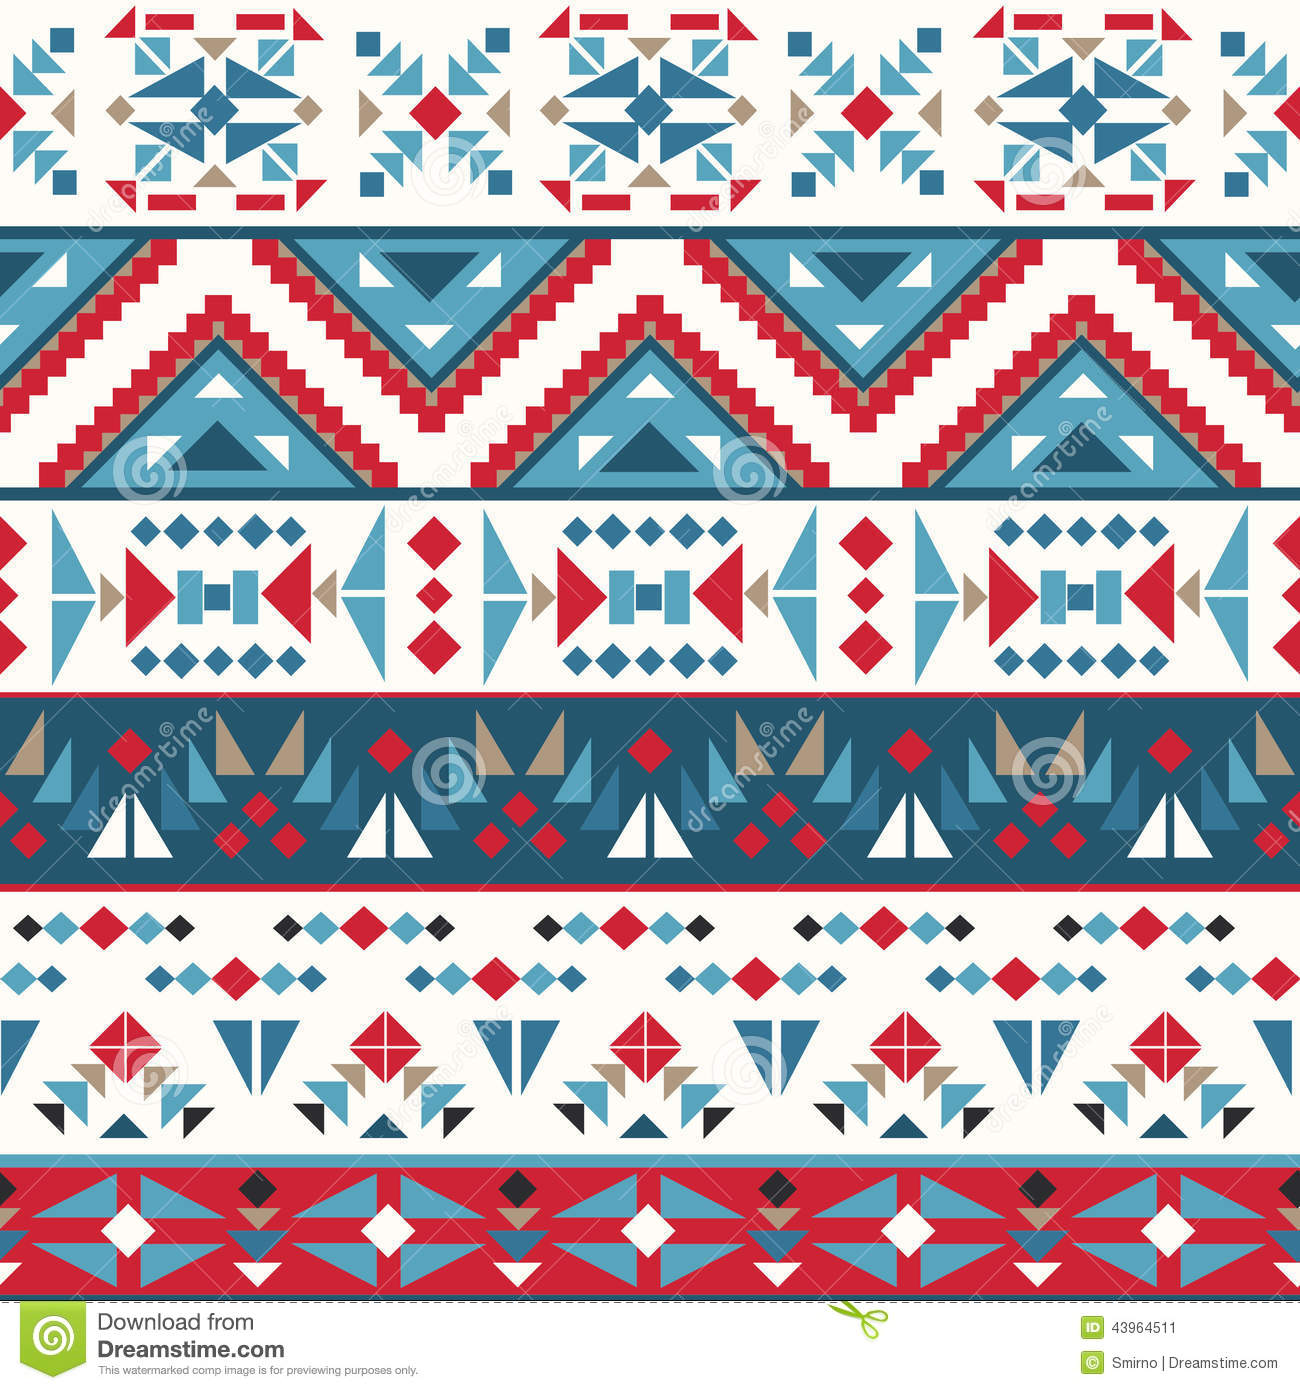 Navajo Patterns Awesome Design Inspiration